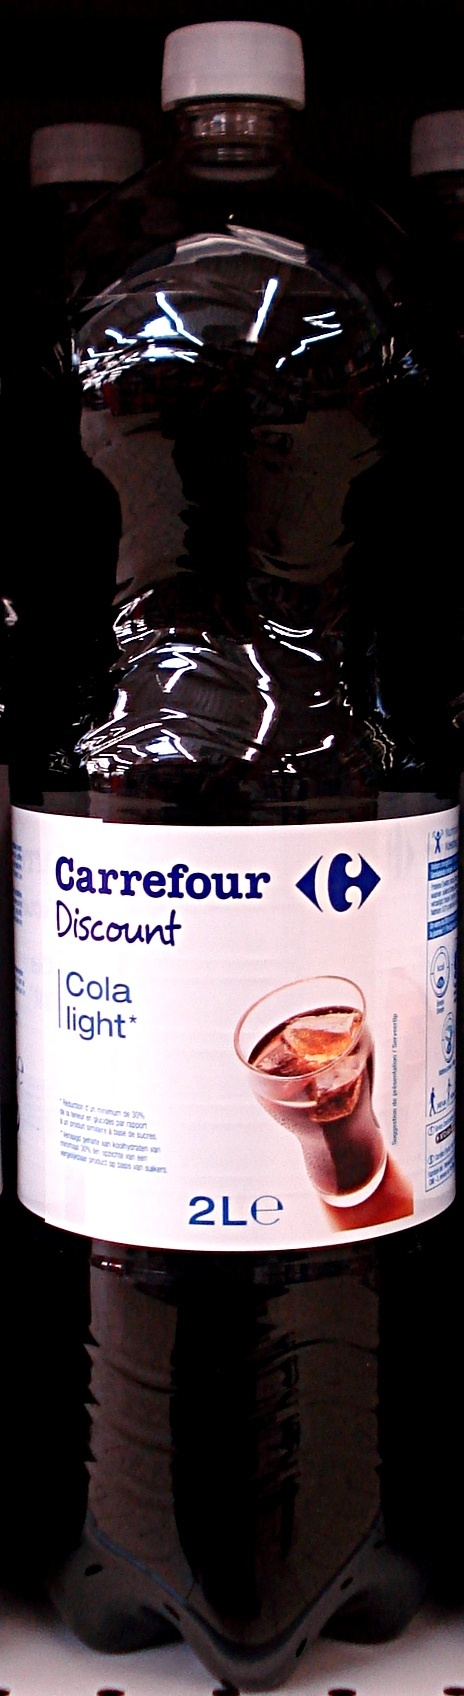 Cola Light Carrefour Discount - Product